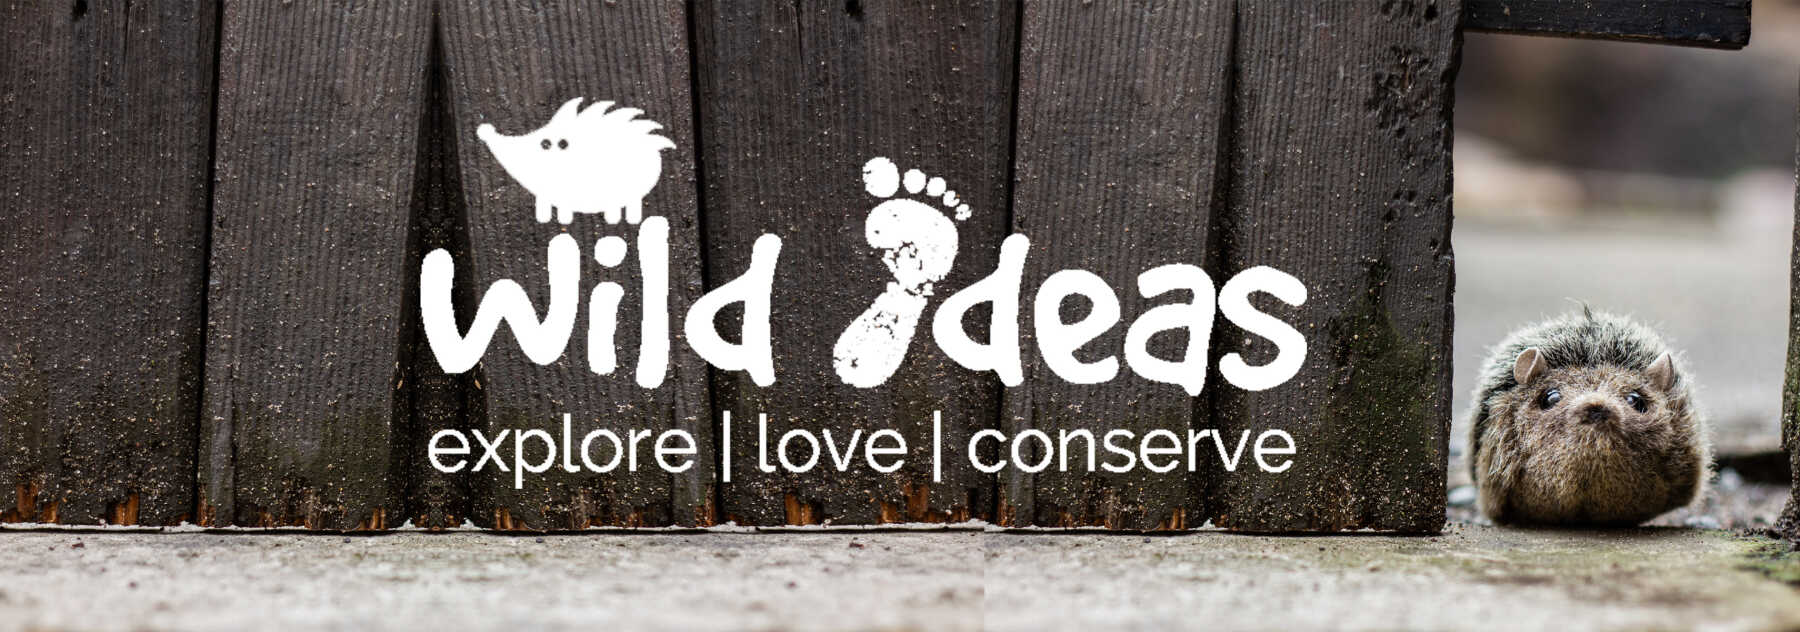 Featured Image for Wild Ideas